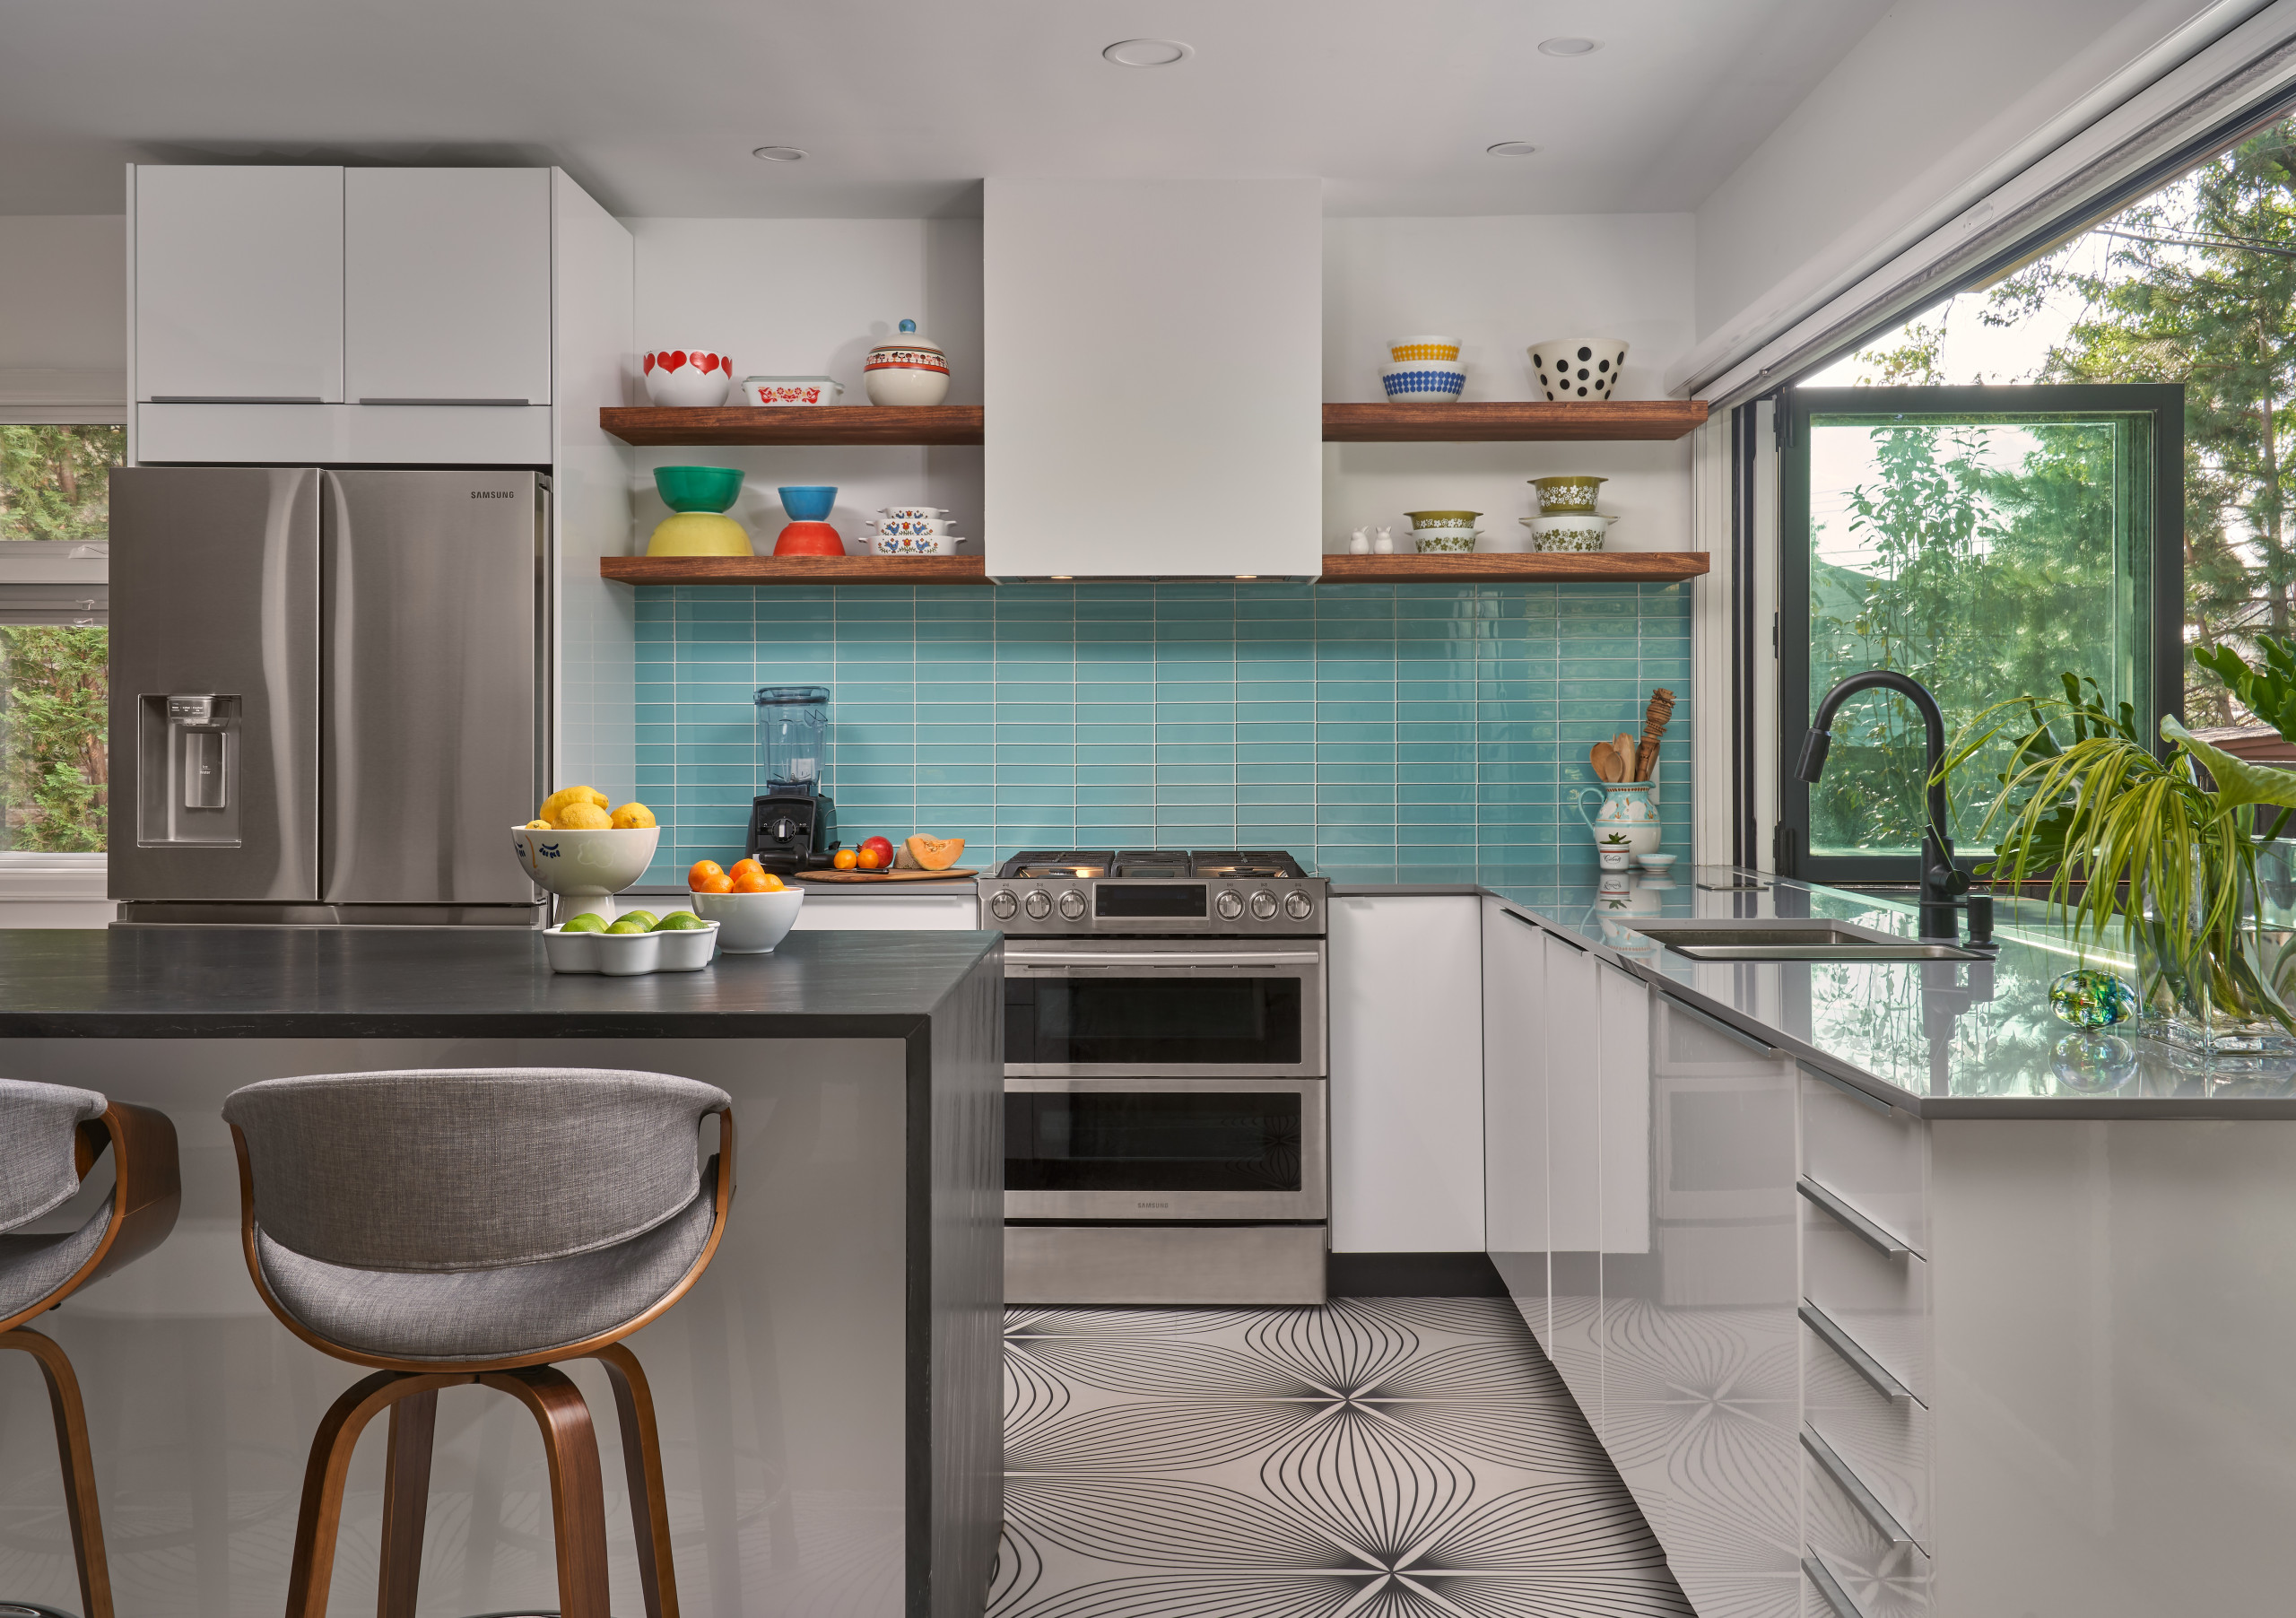 75 Beautiful Kitchen With Glass Tile Backsplash Pictures Ideas November 2020 Houzz